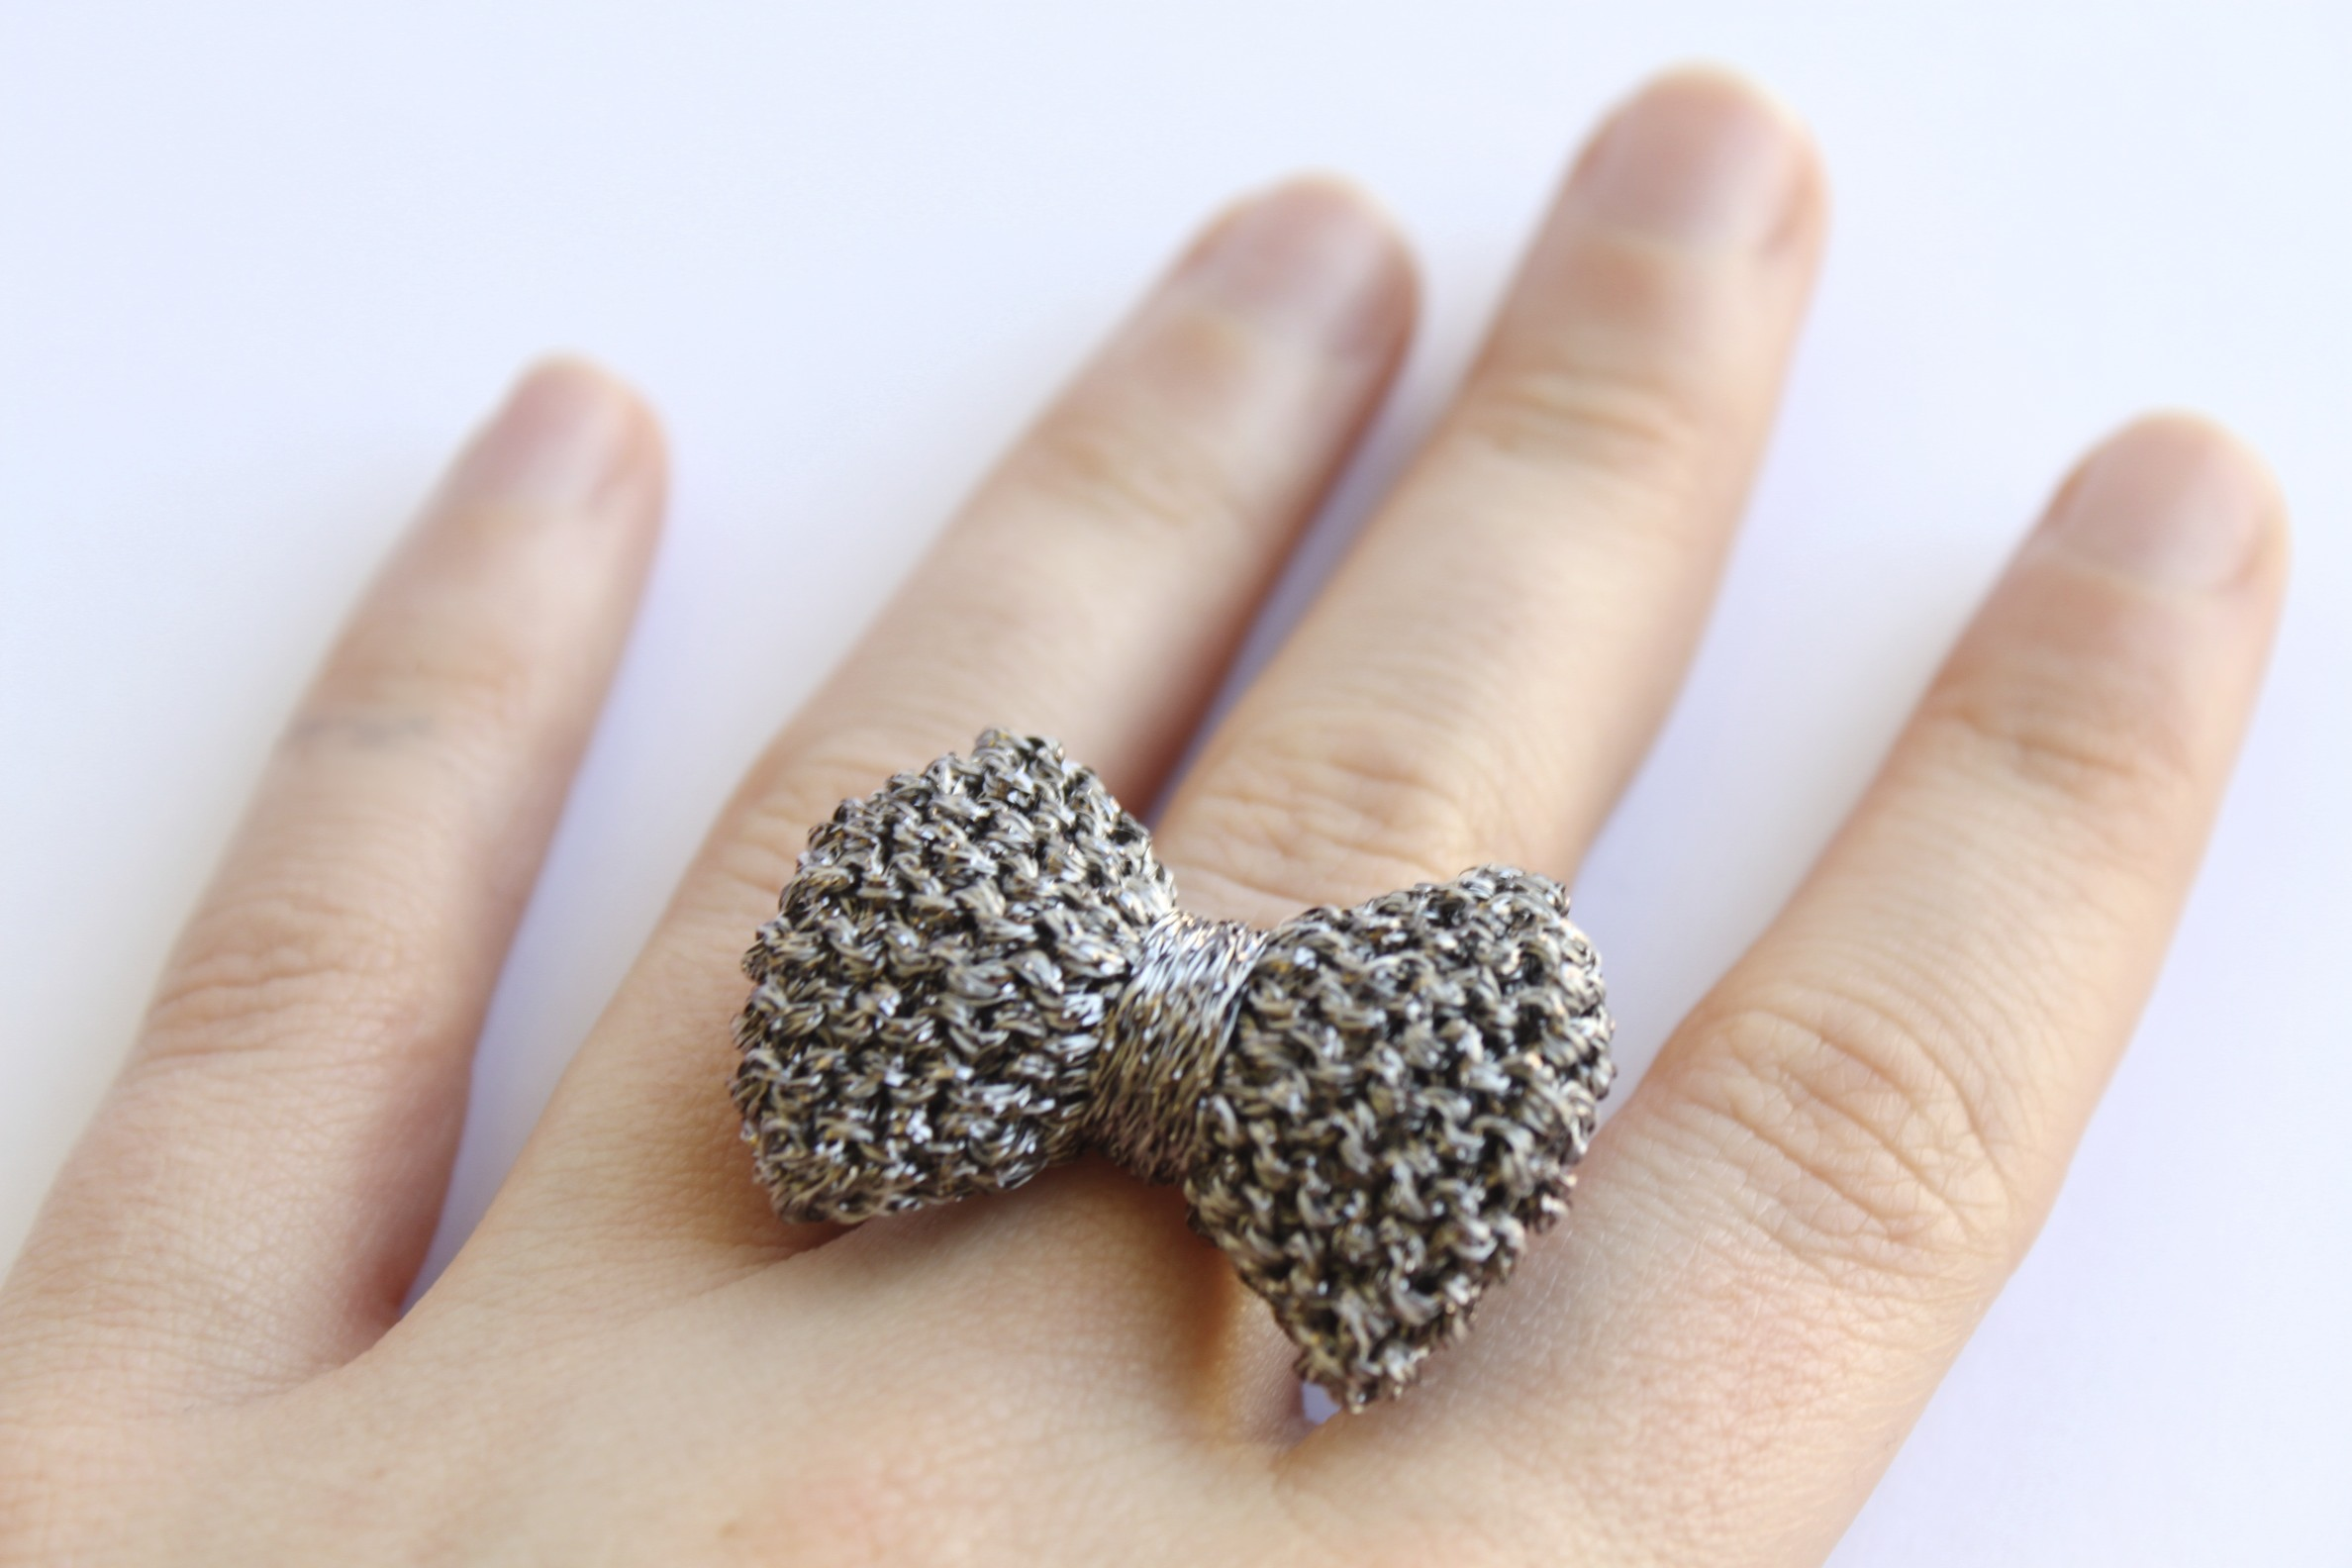 band rings cz ring belle rhodium star boutique garnet gypsy charm collections simple knitted products b size holiday